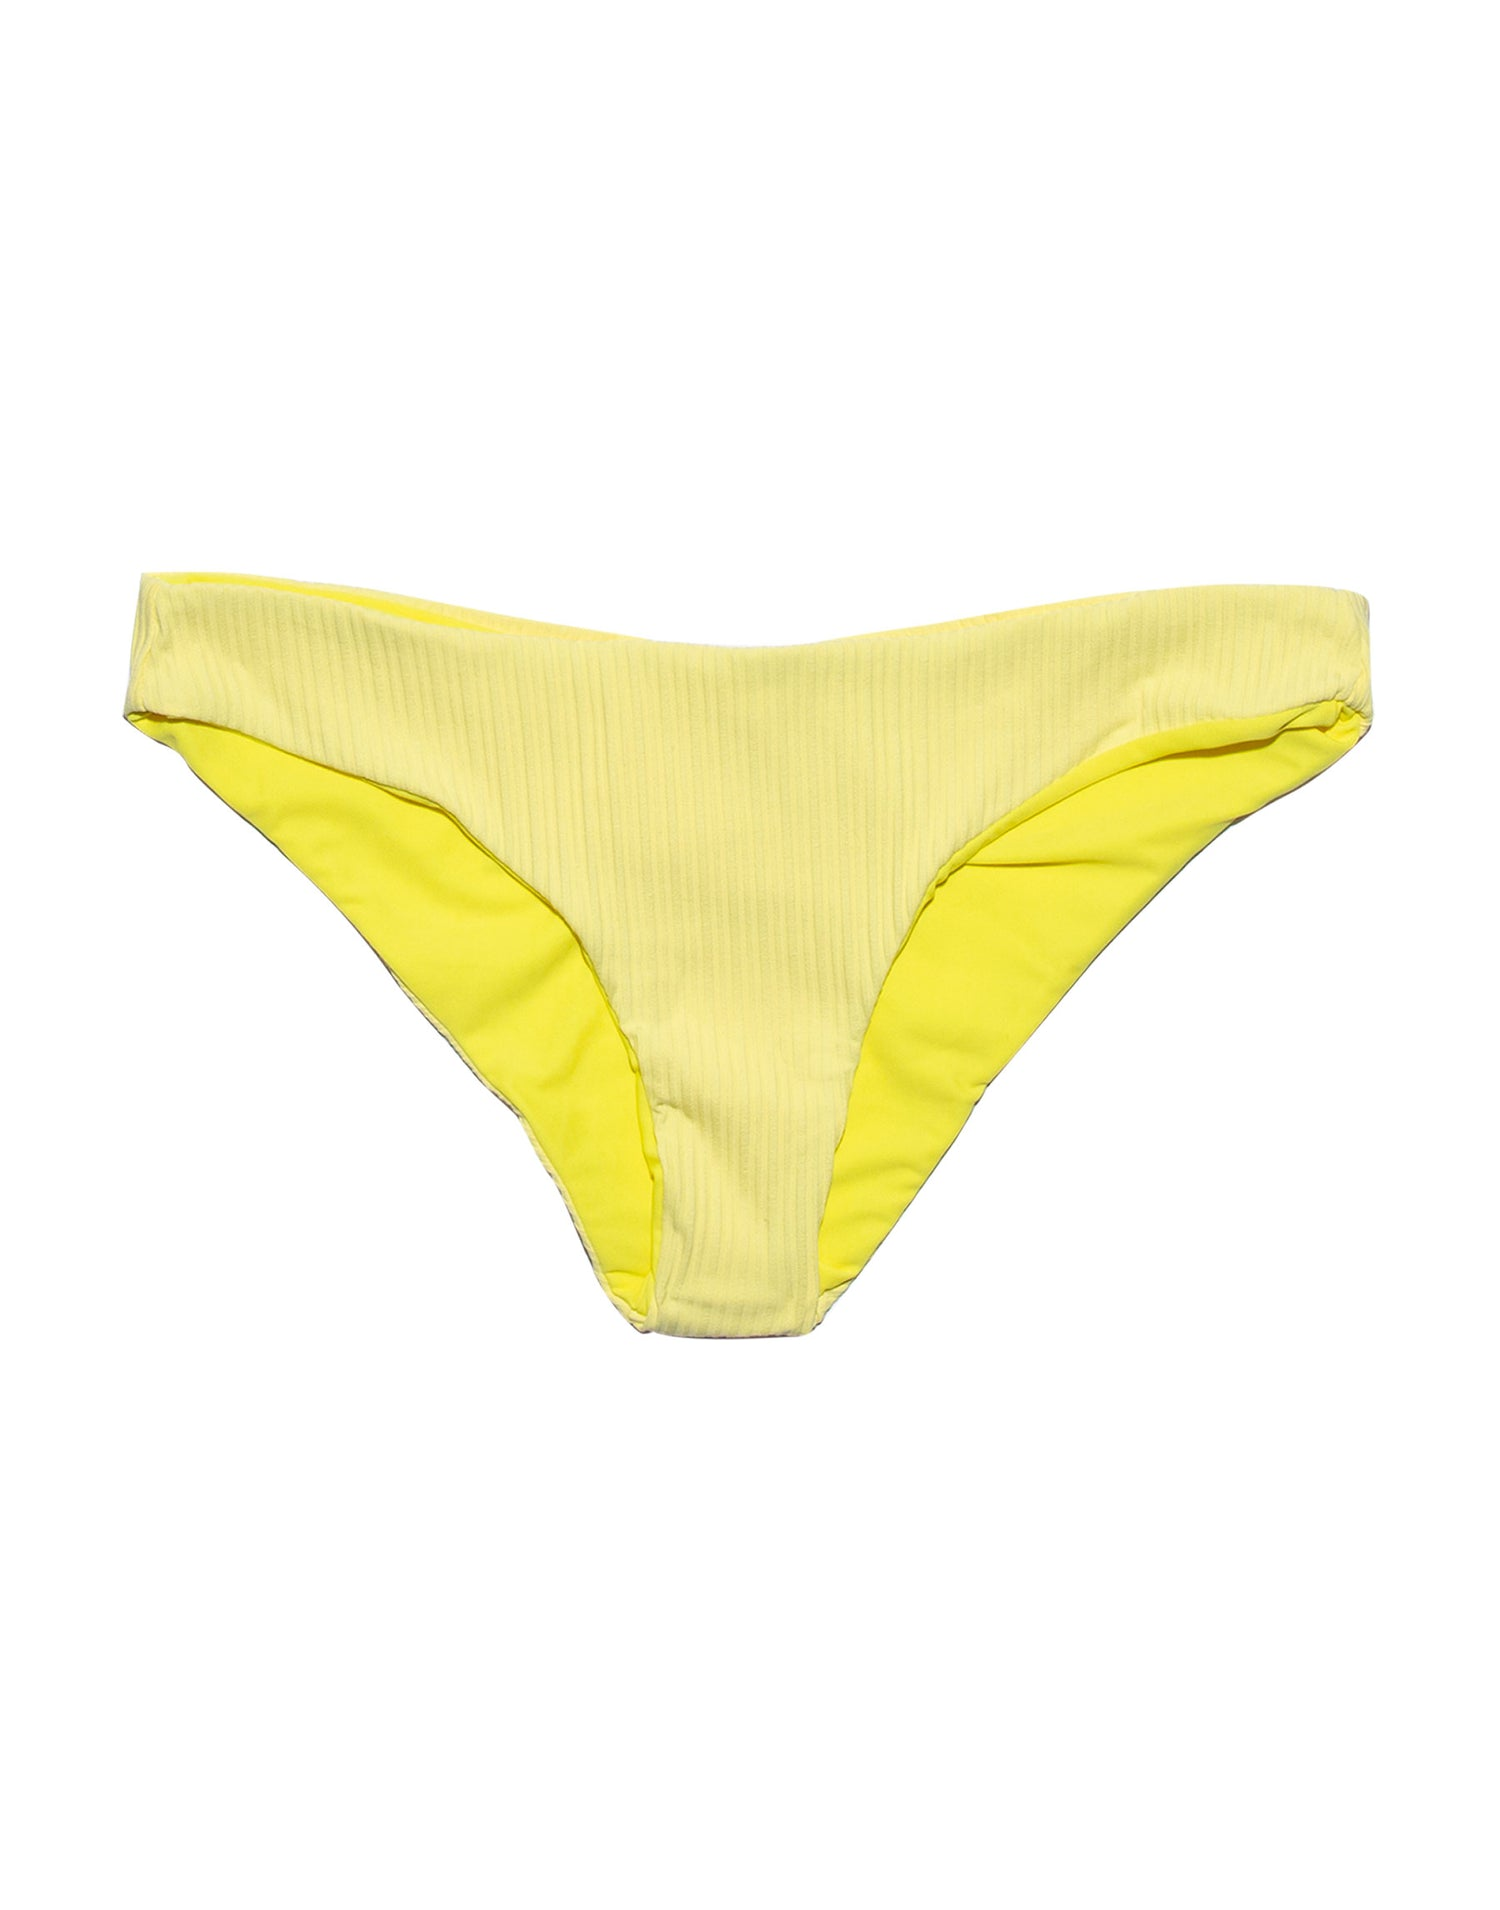 Stephanie Midi Bikini Bottom in Lemon Yellow Rib - product view